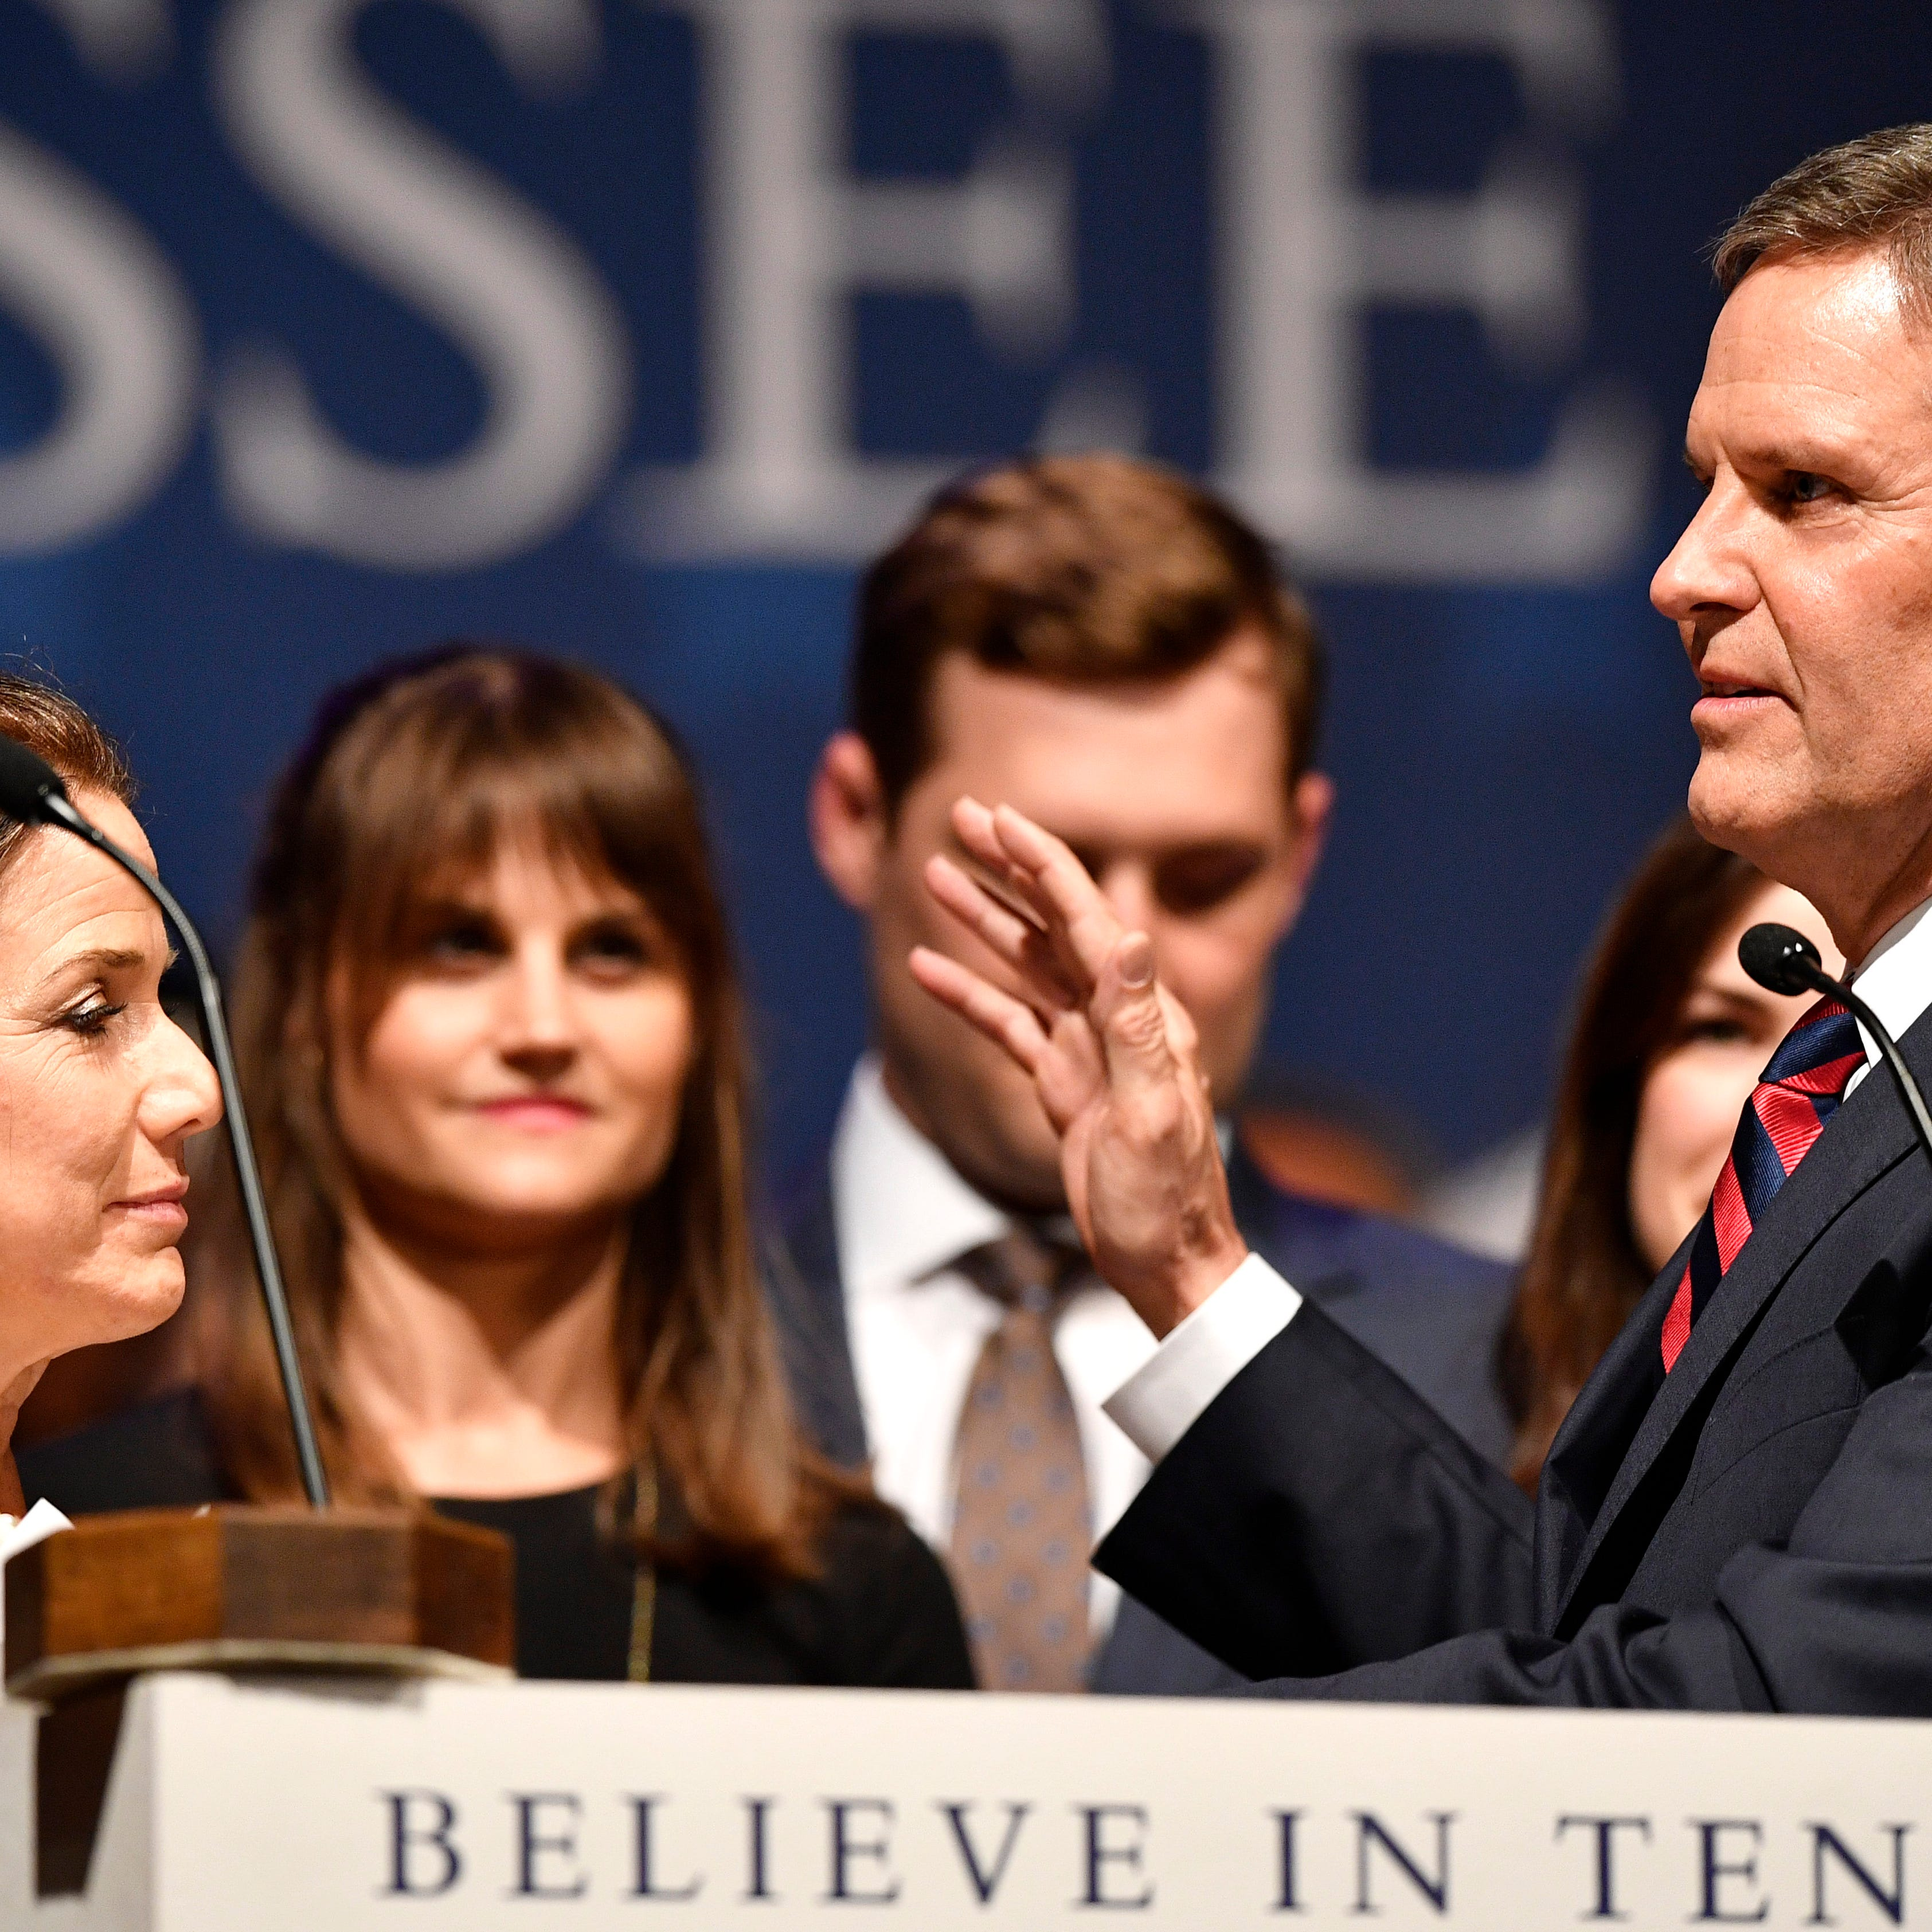 Bill Lee is sworn in as the 50th governor of Tennessee by Supreme Court Chief Justice Jeffrey Bivins as Maria Lee holds the Bible during the inauguration at War Memorial Auditorium in Nashville, Tenn., Saturday, Jan. 19, 2019.